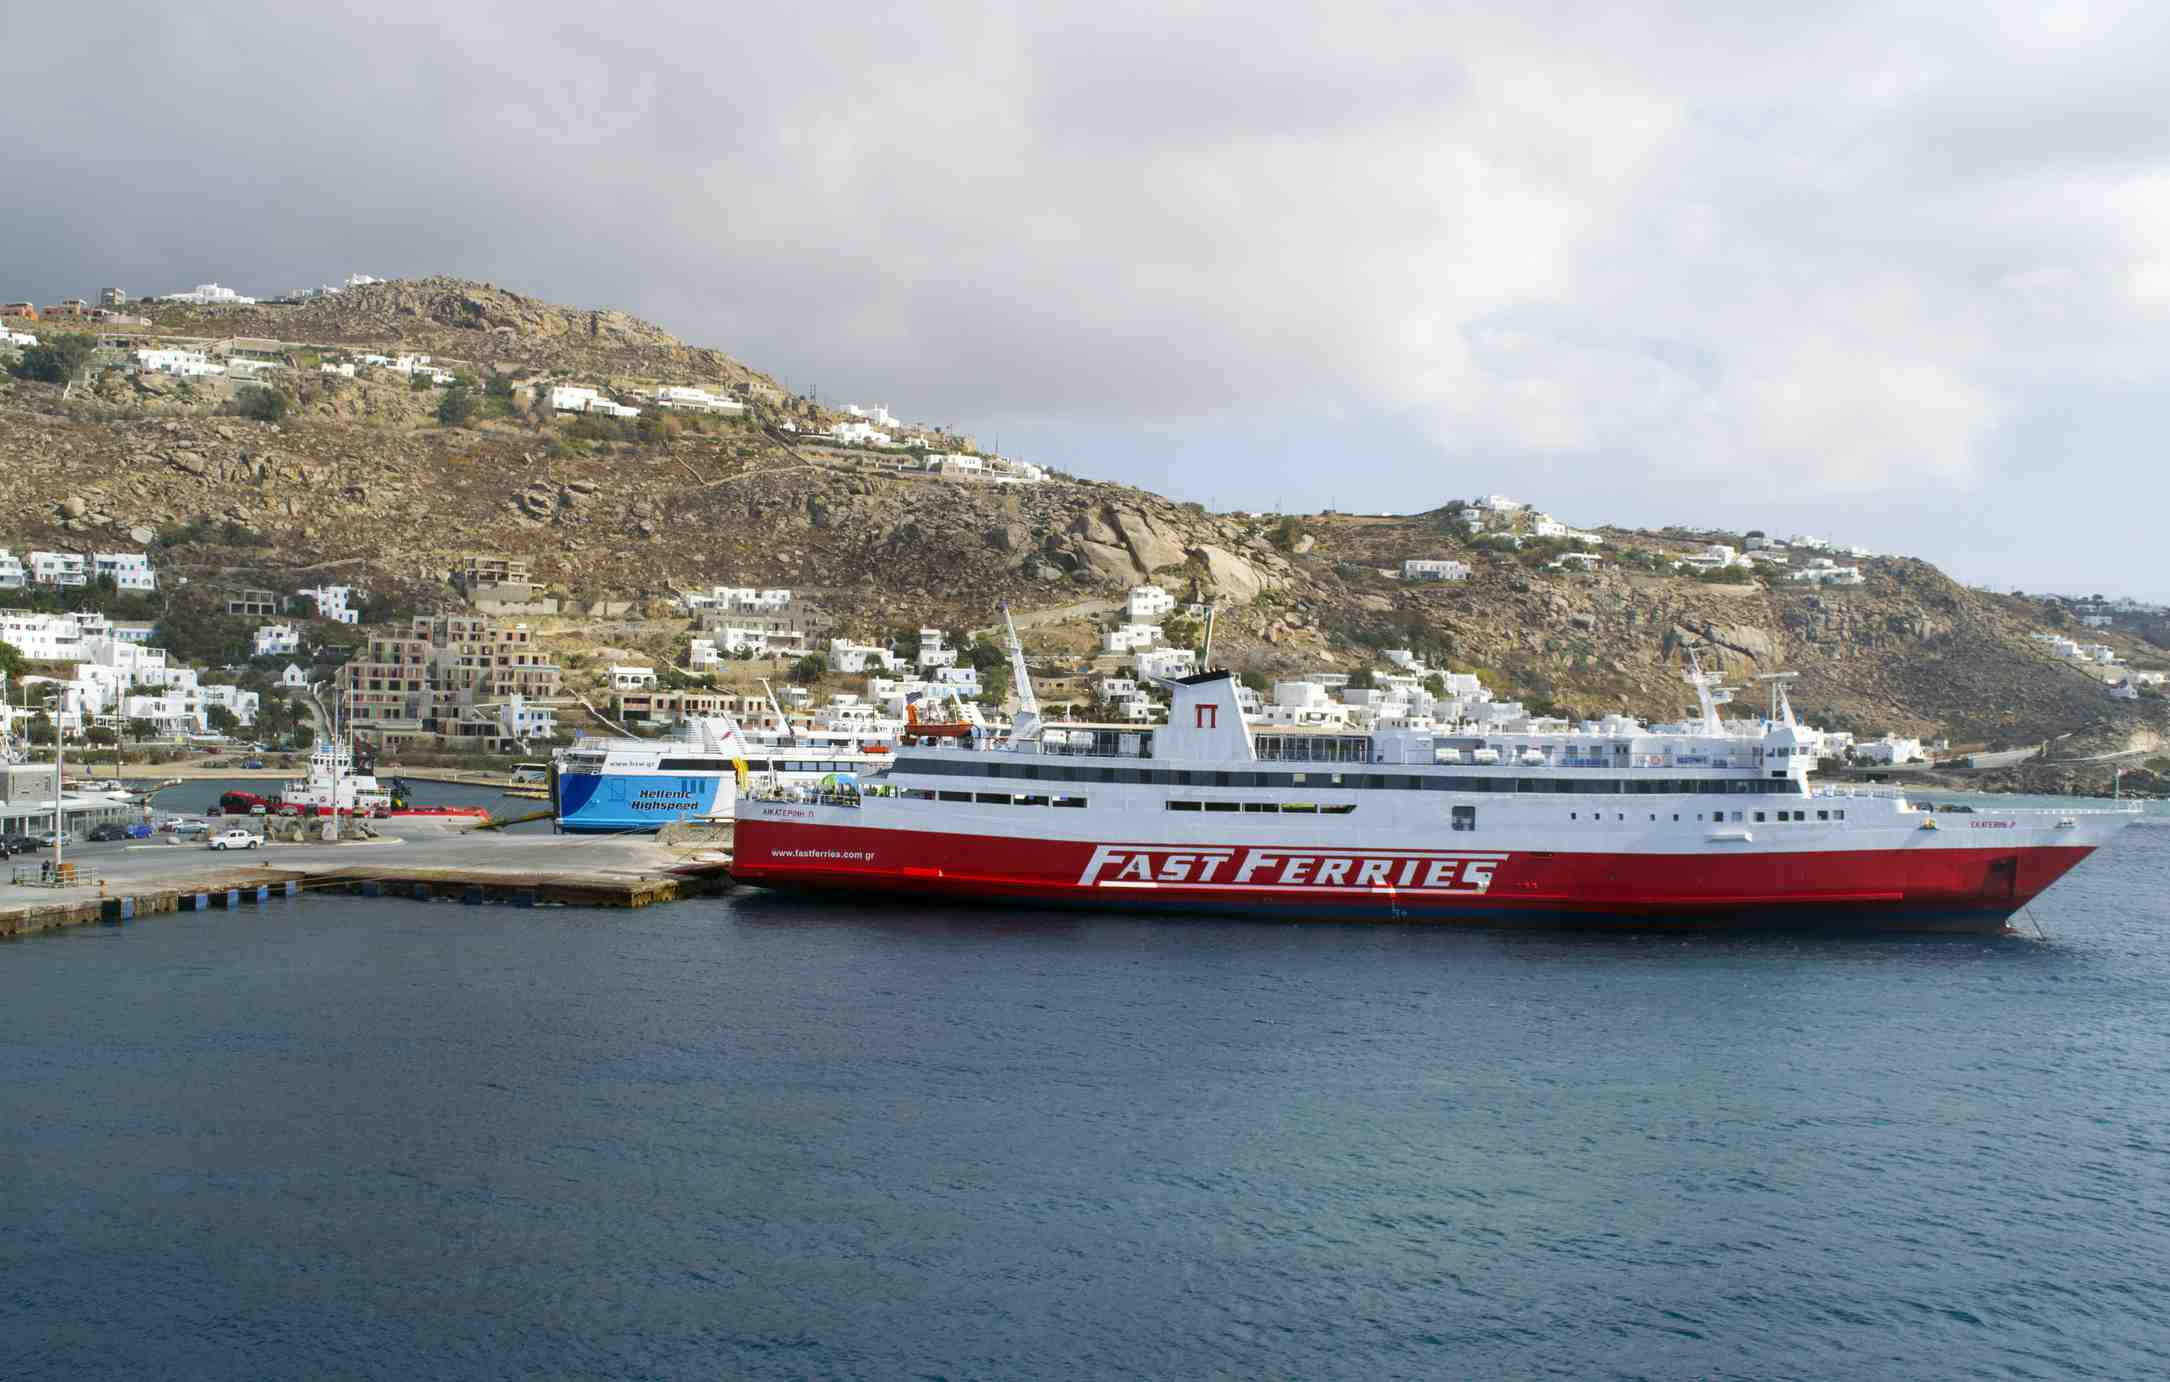 A Fast Ferries ship at port